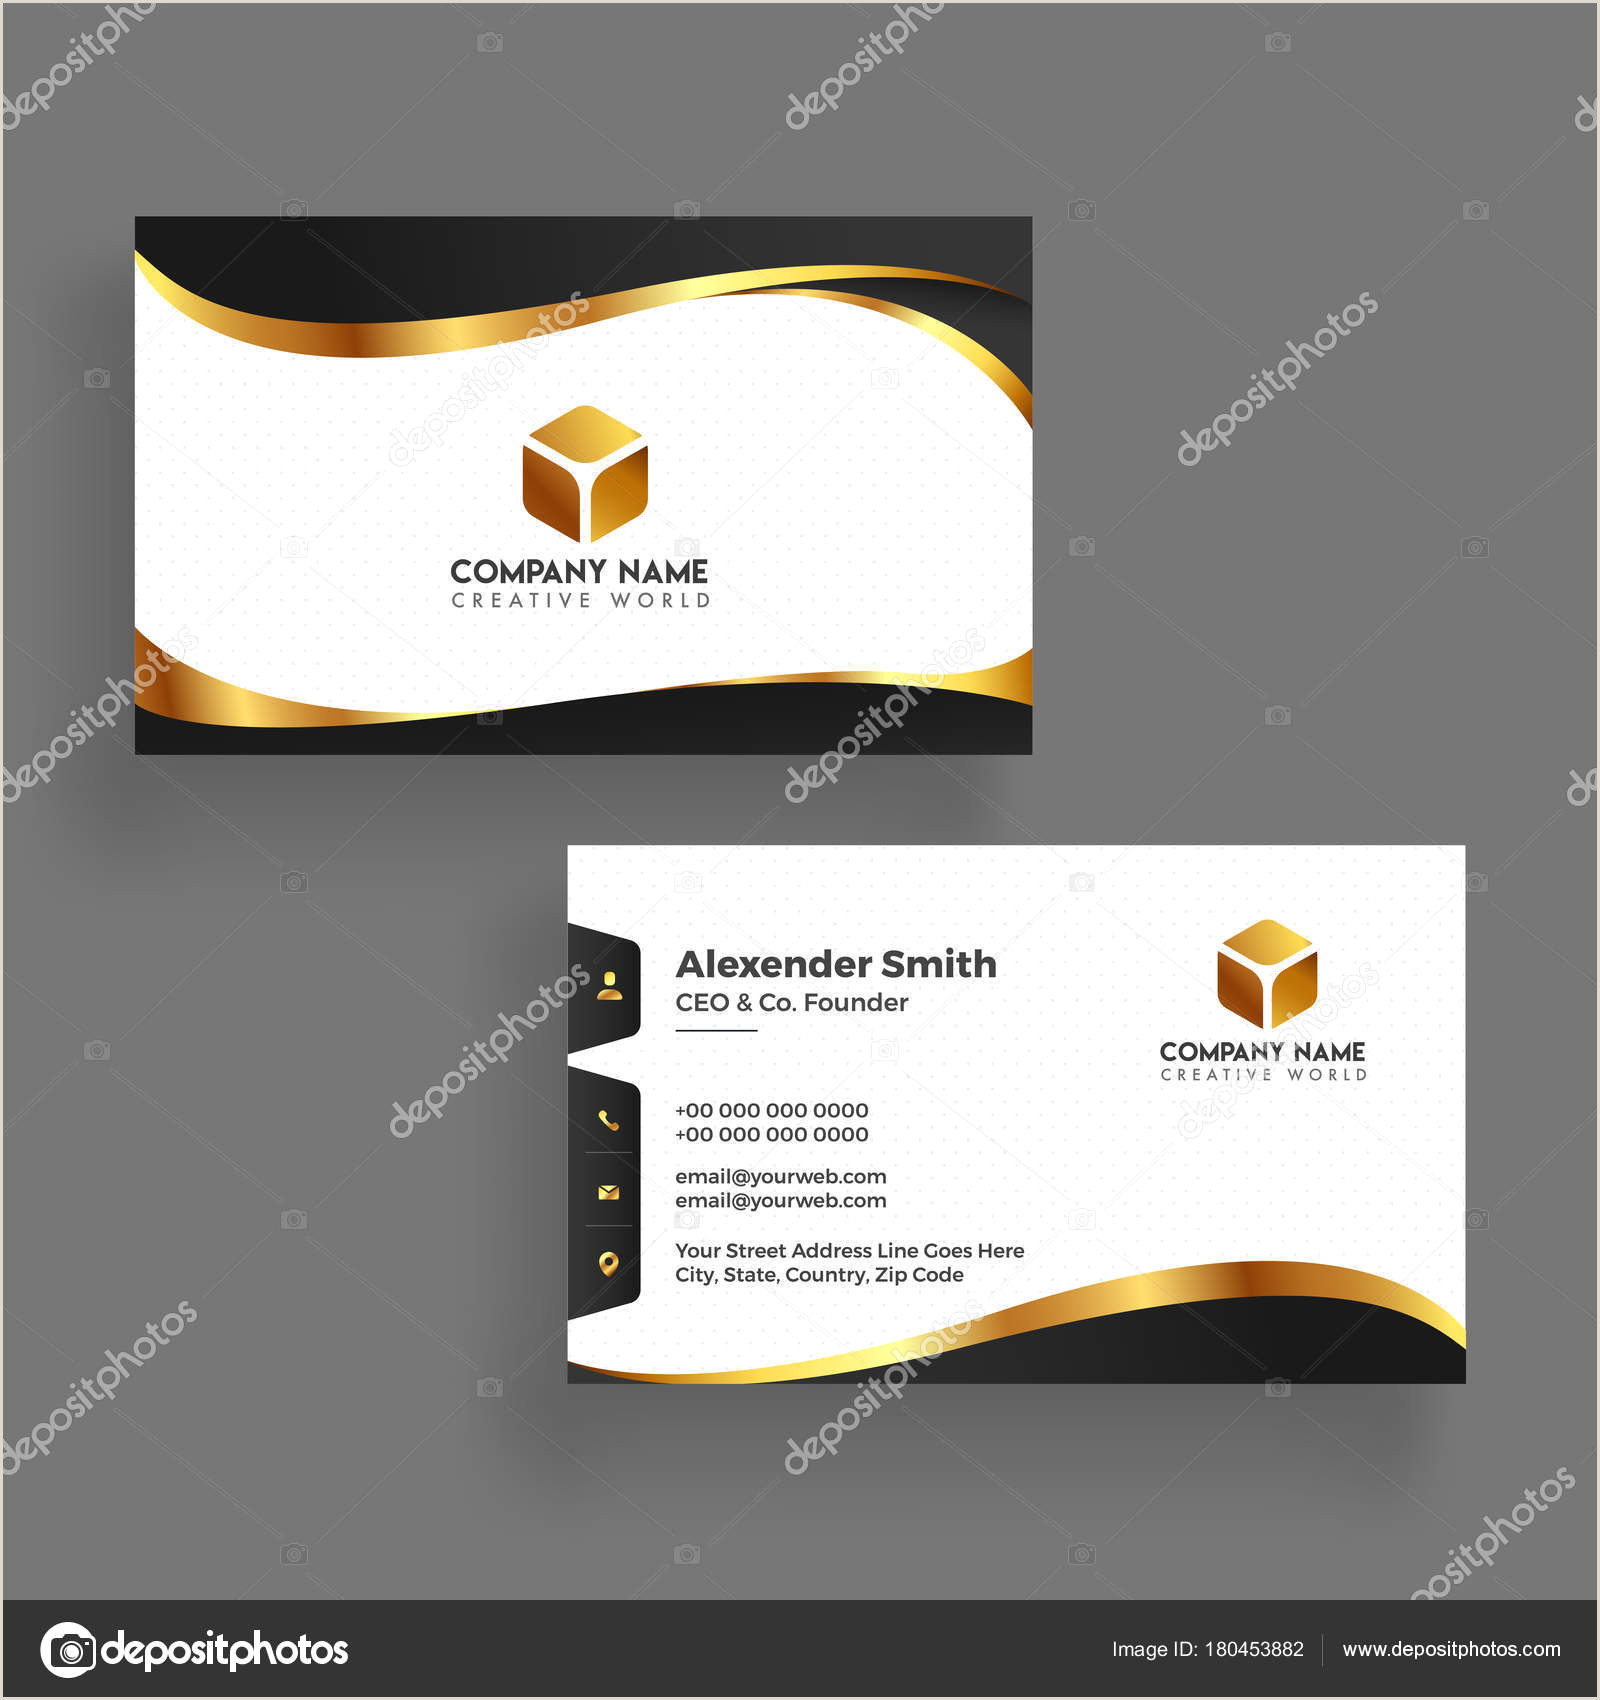 Business Card Front And Back Modern Business Card Template Design Both Sided Contact Card F